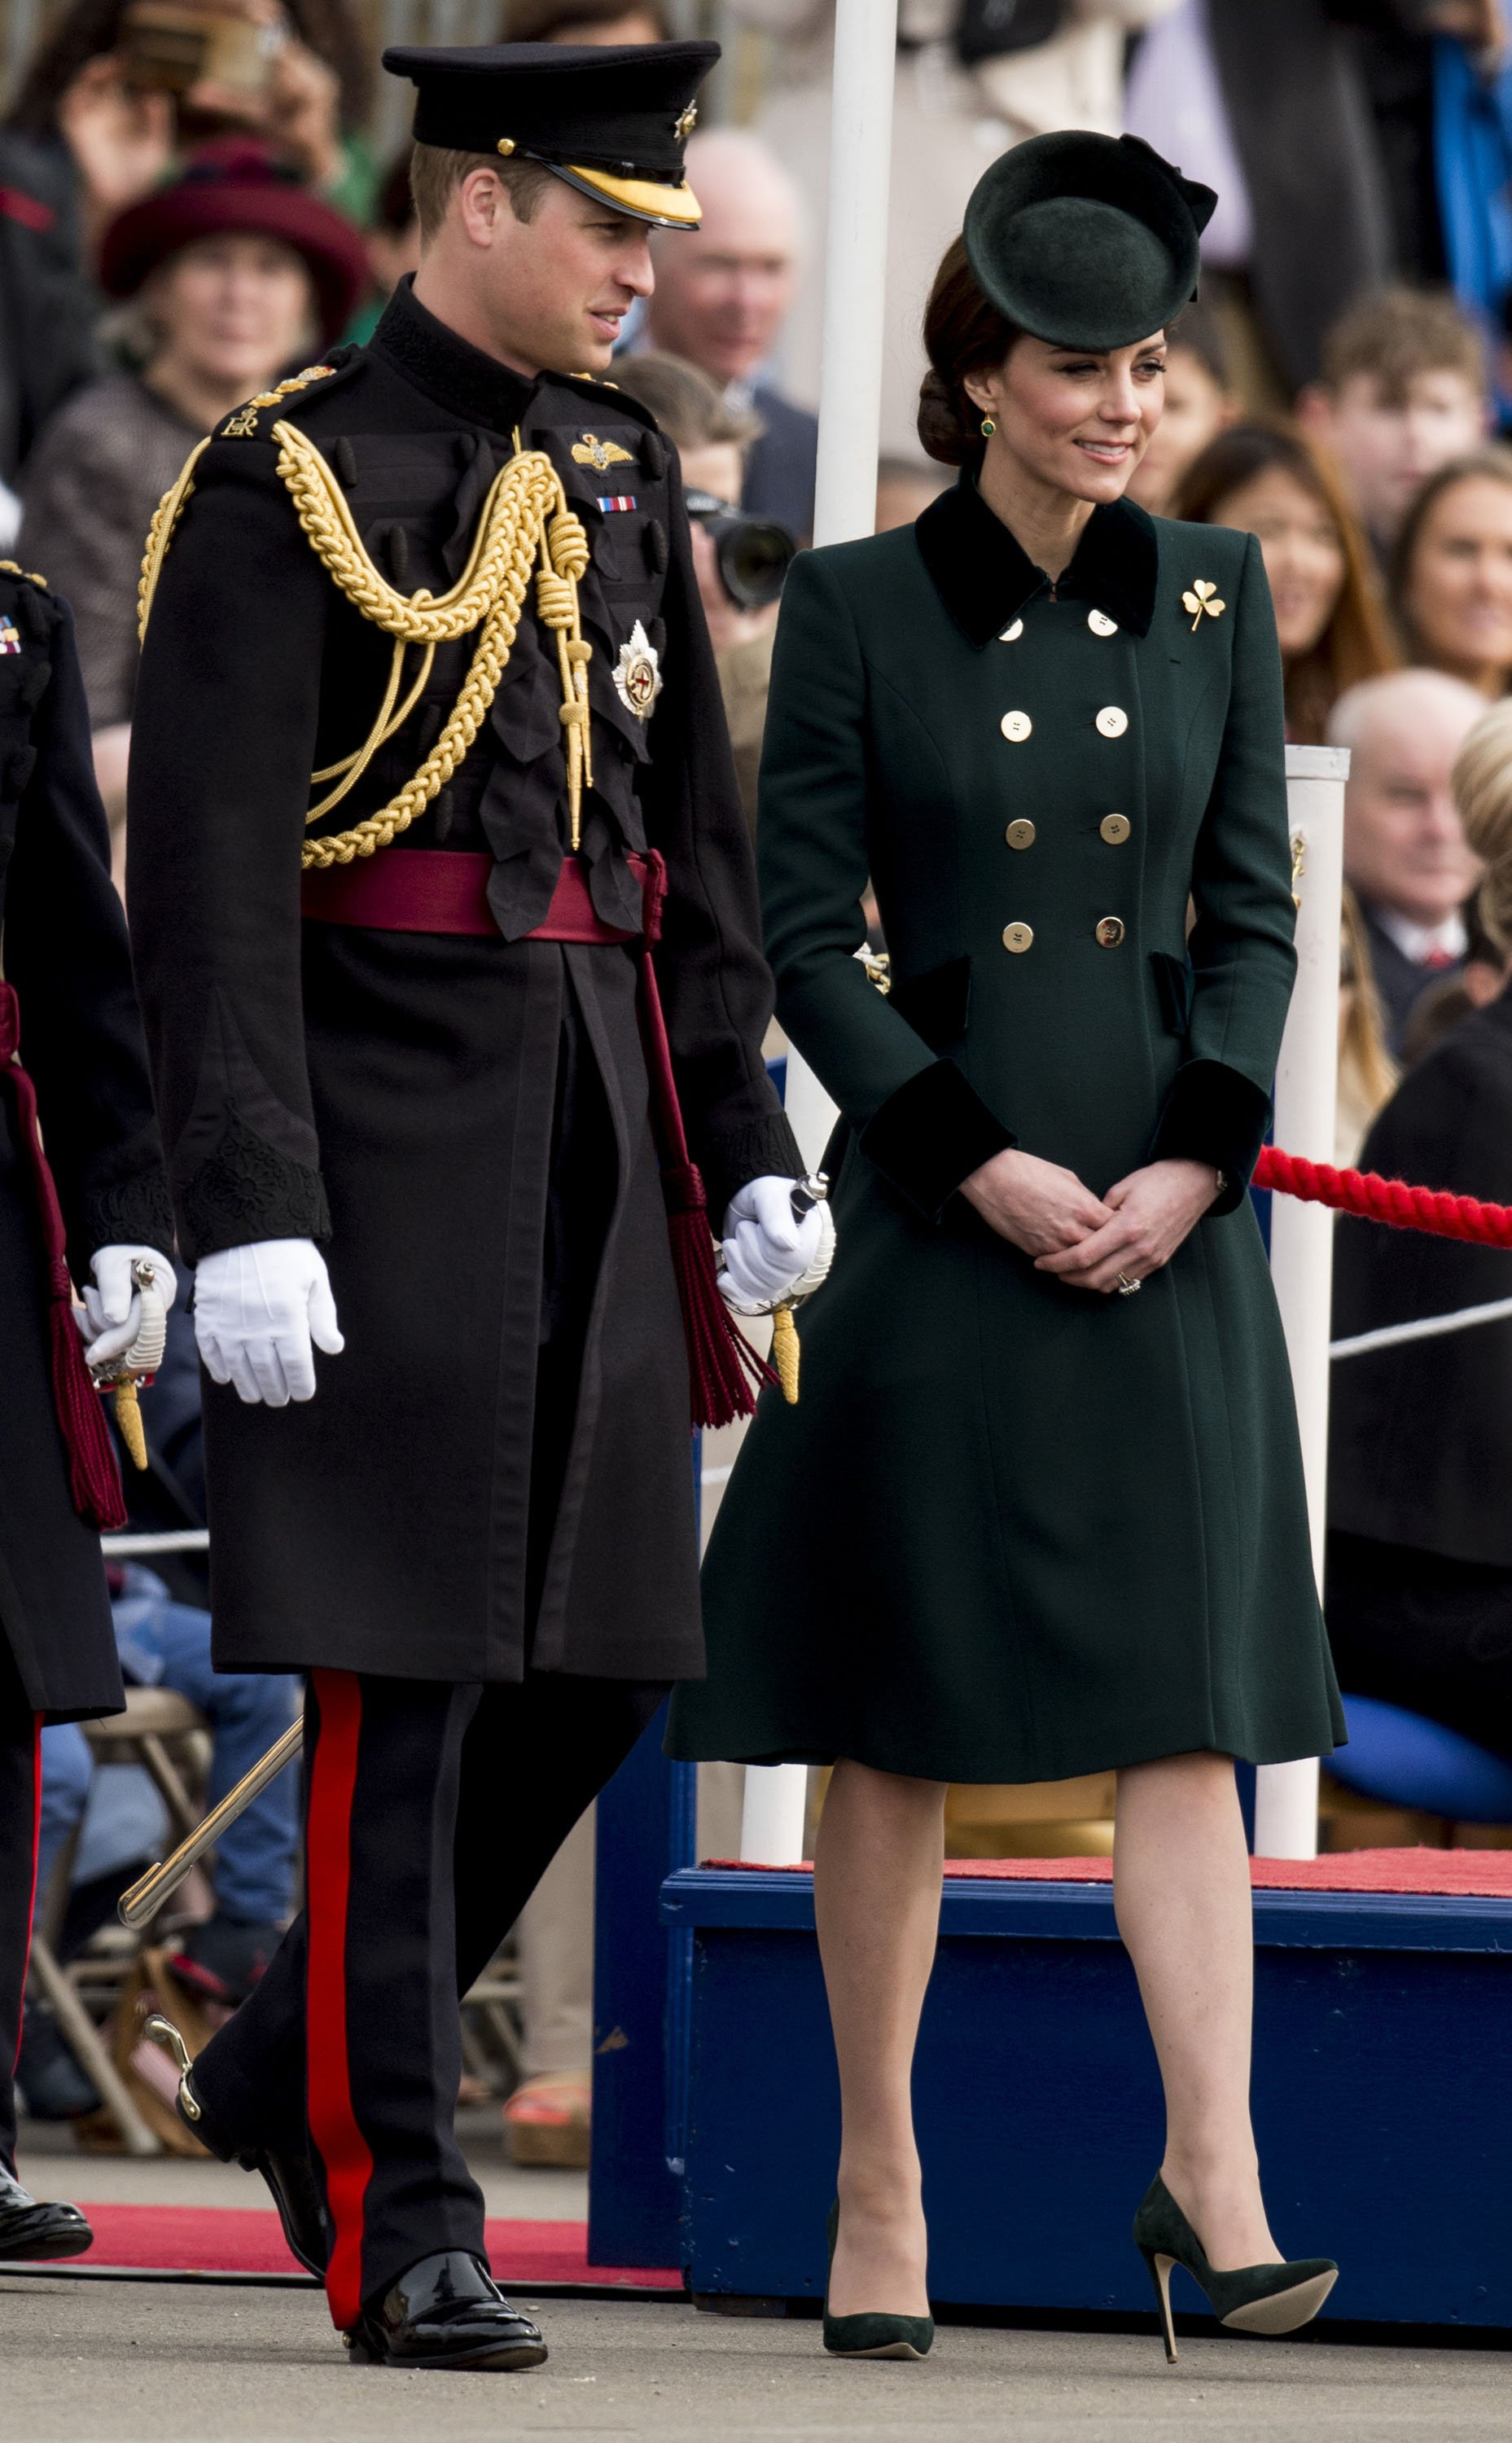 Prince William, Duke of Cambridge and Catherine, Duchess of Cambridge attend the annual Irish Guards St Patrick's Day Parade at Household Cavalry Barracks on March 17, 2017 in London